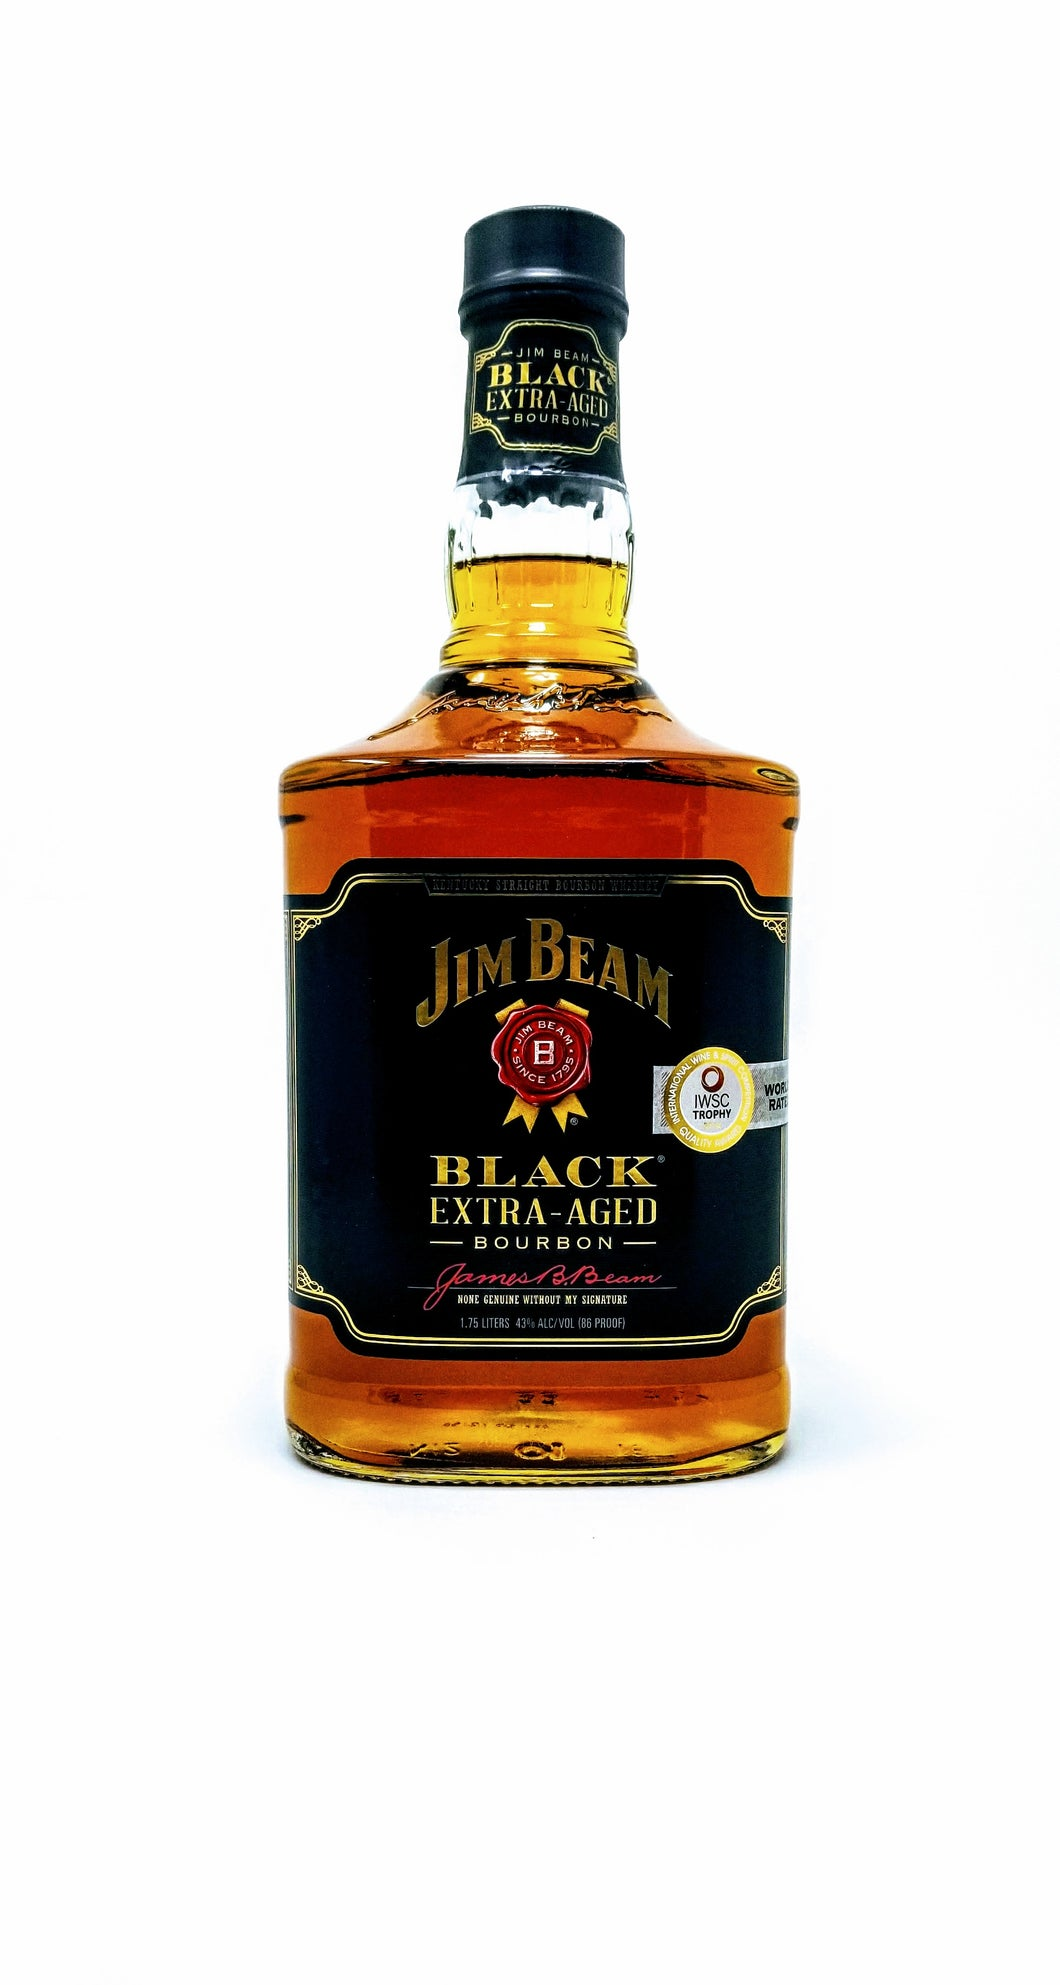 Jim Beam Black 1.75